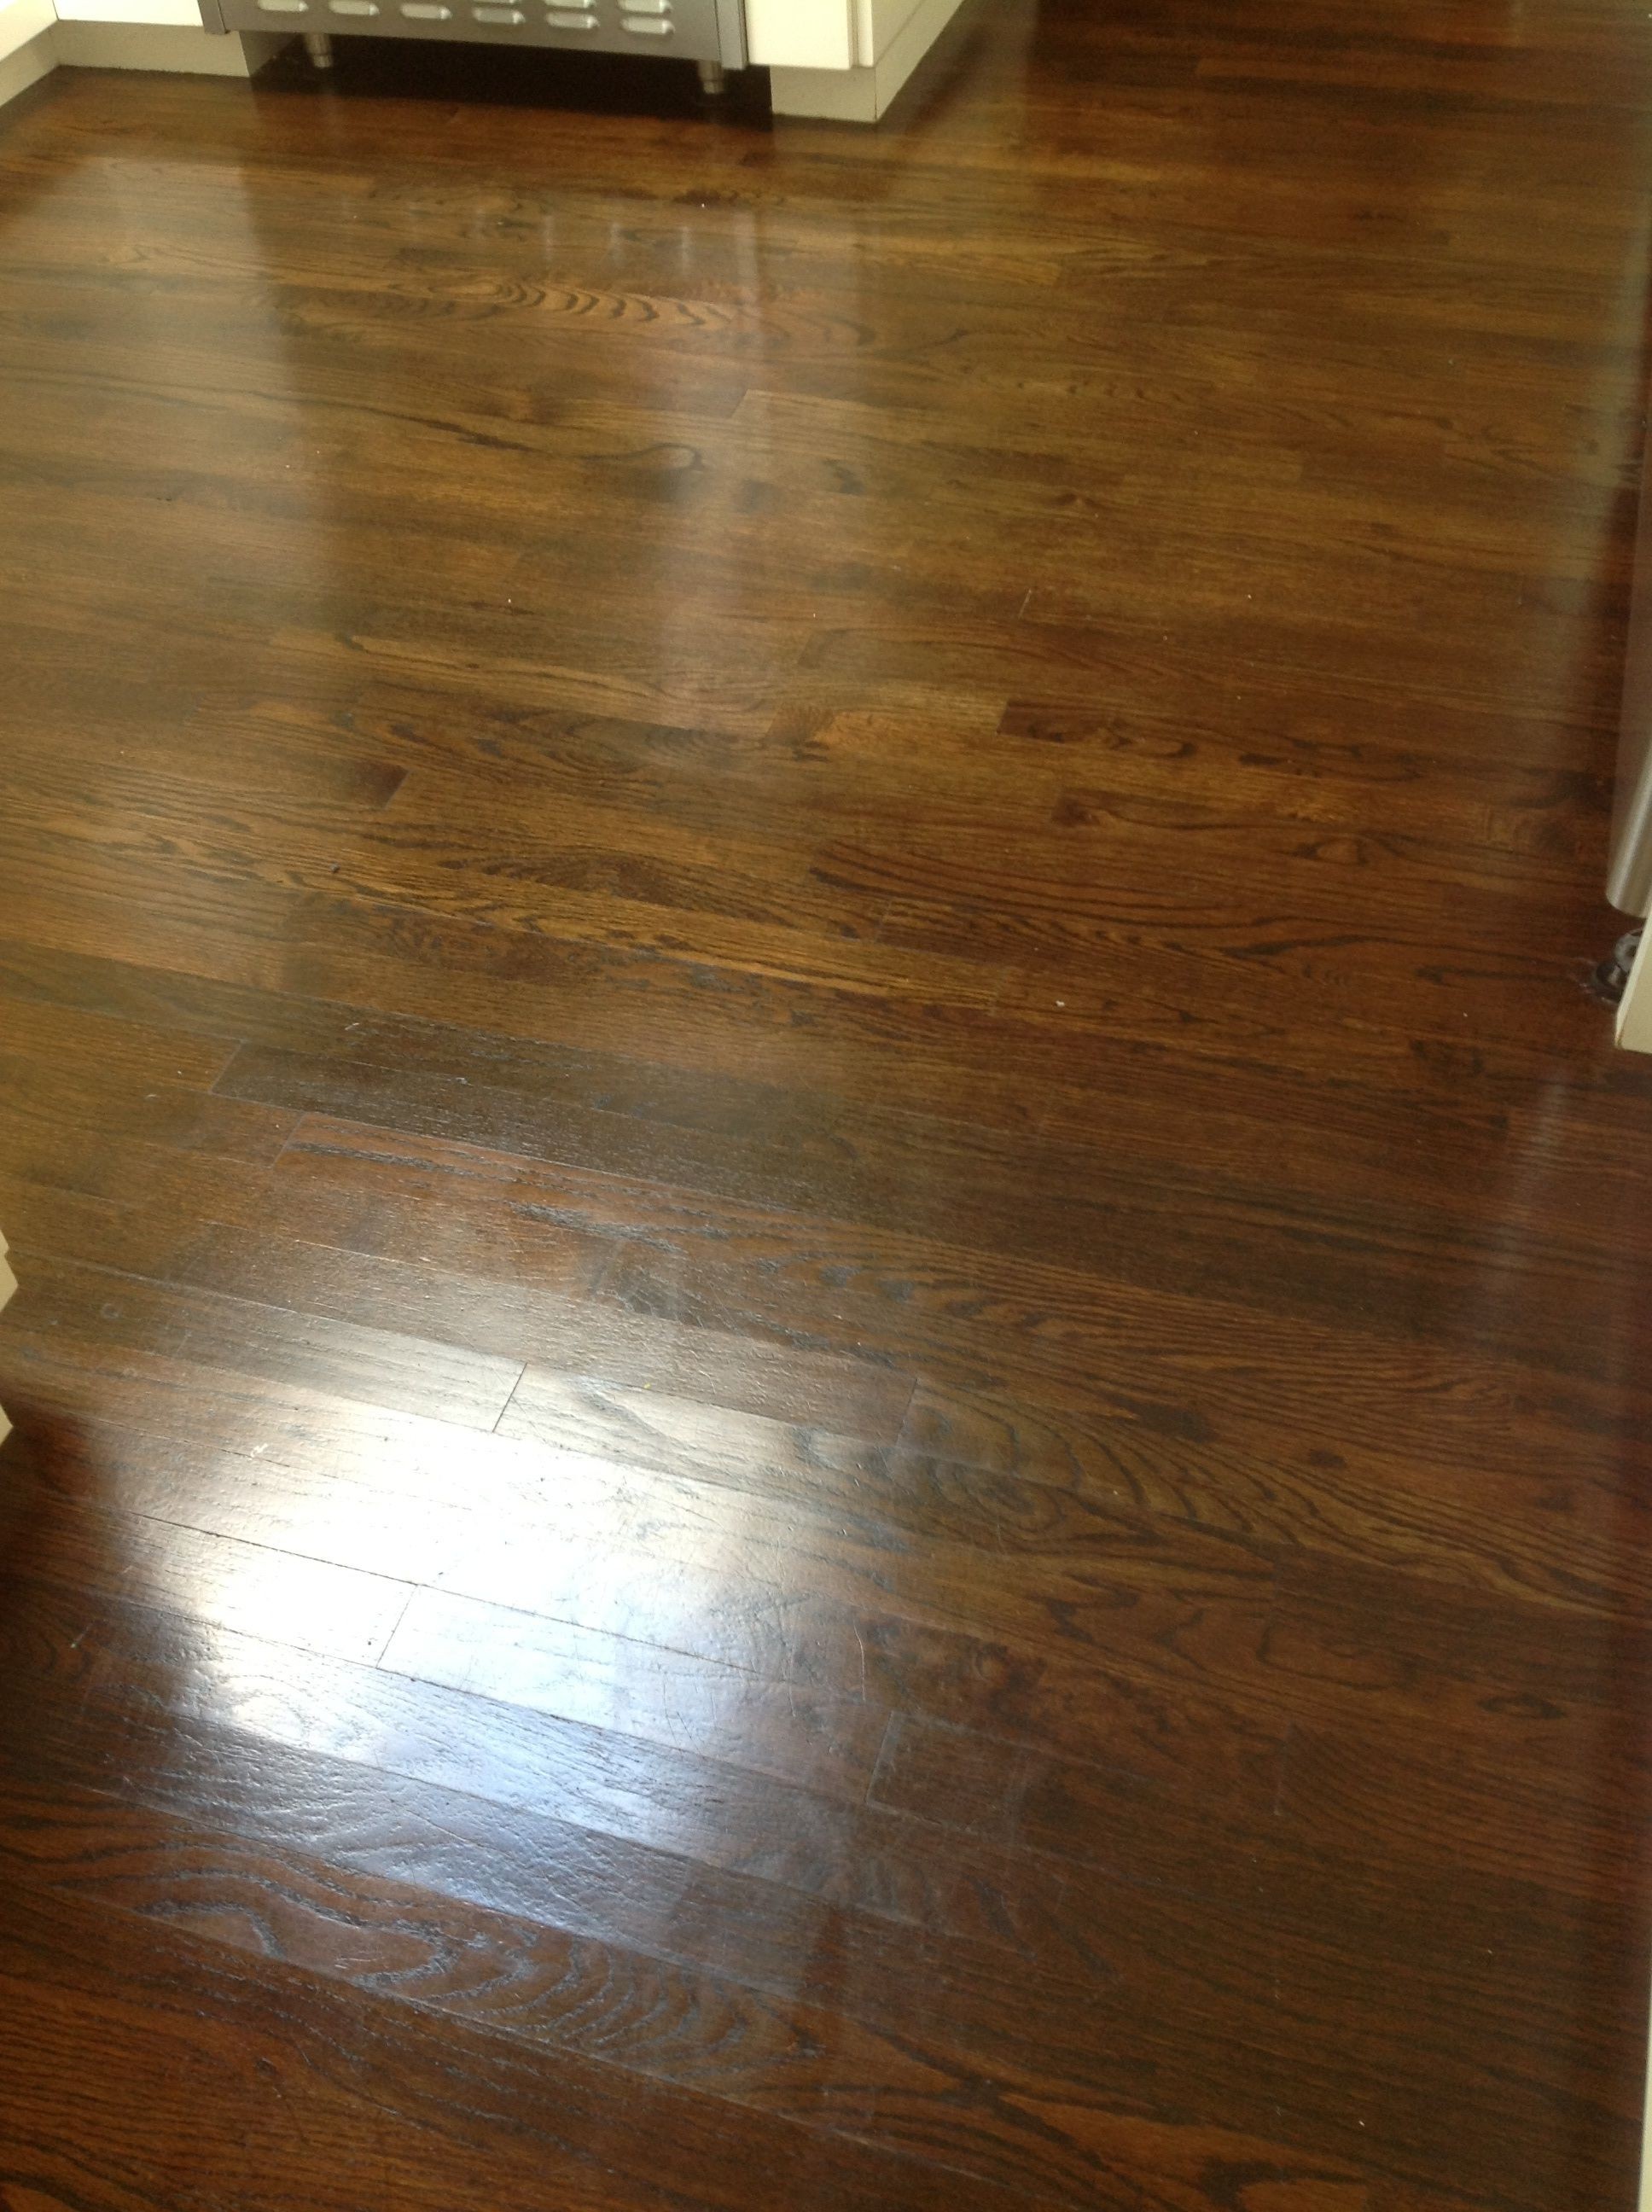 Shine Wood Floors With Coconut Oil